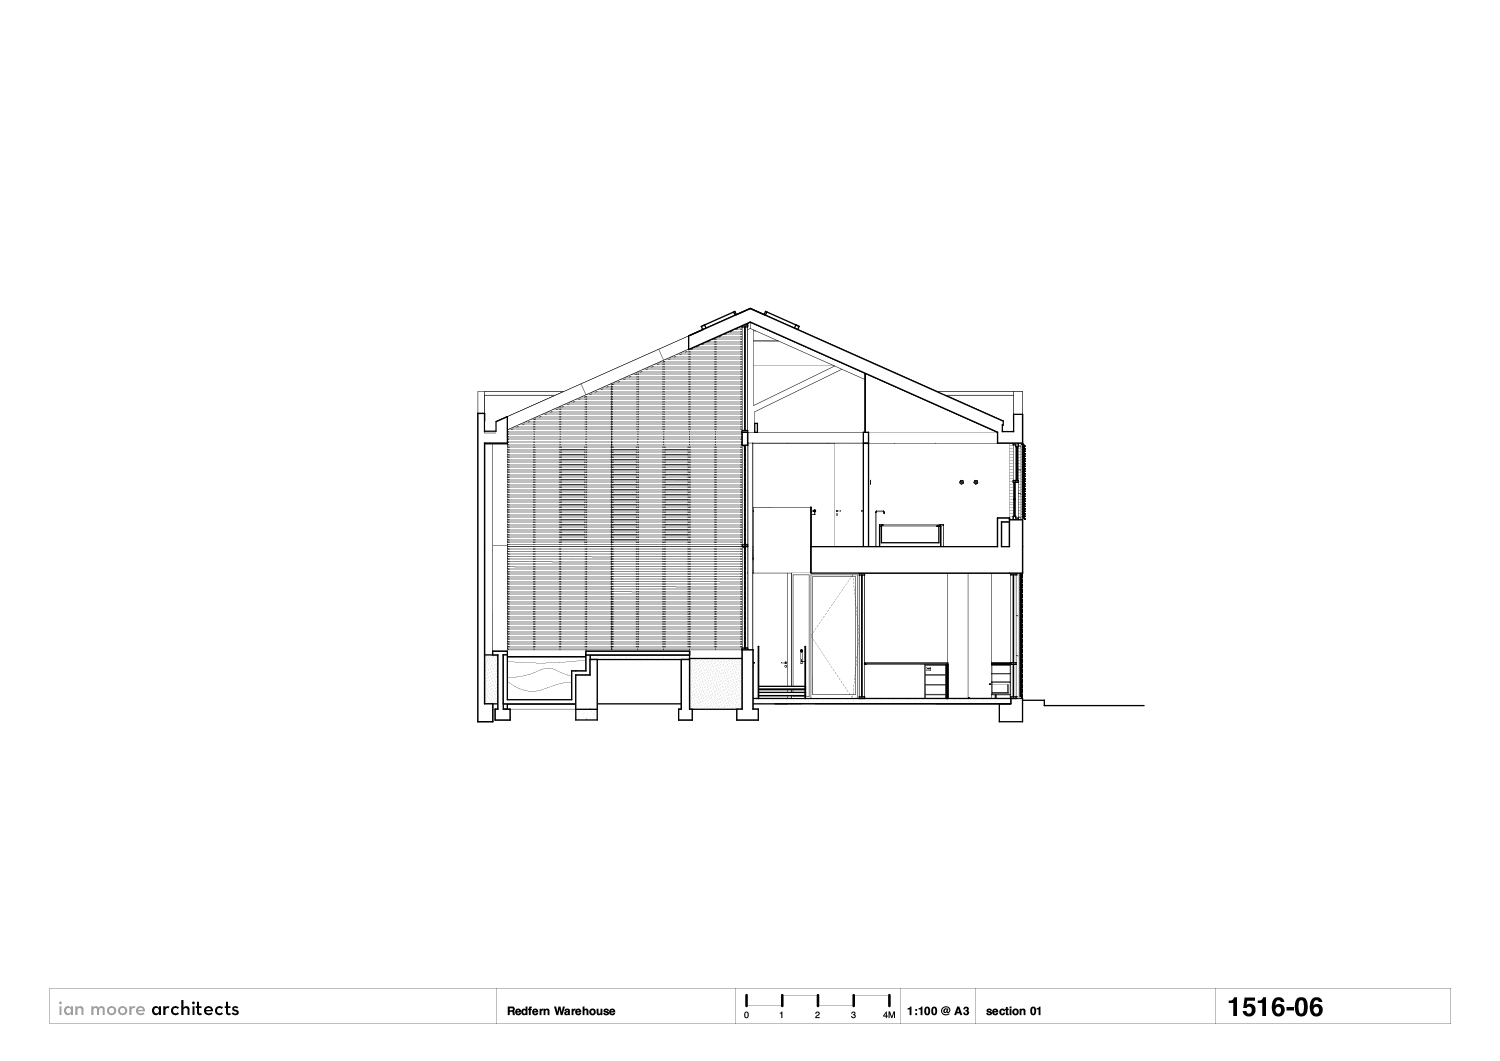 section 01 Ian Moore Architects}